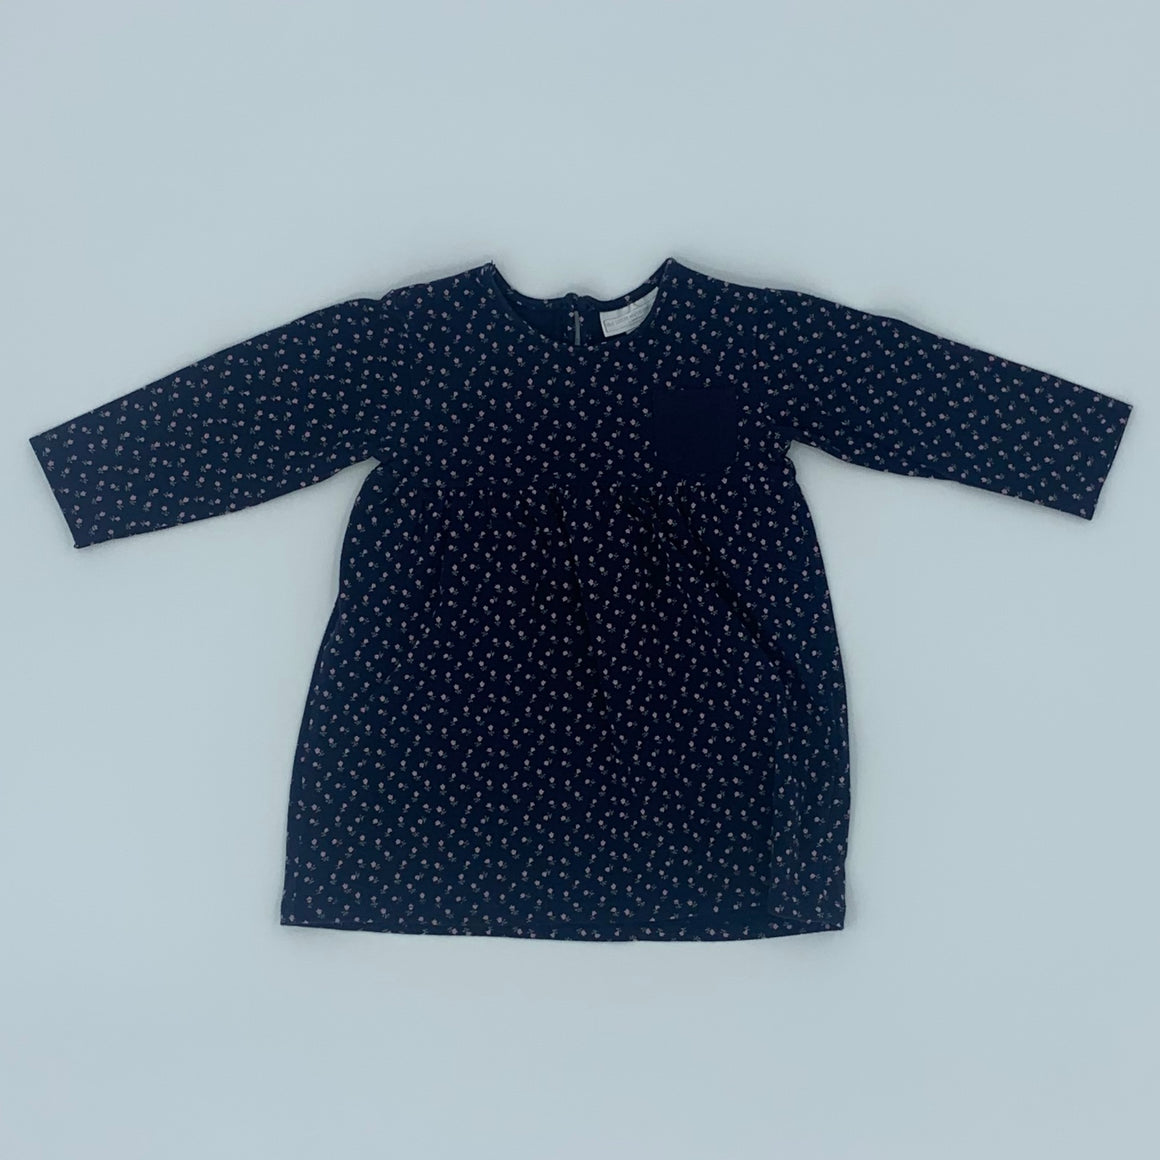 Gently Worn The White Company navy flower dress size 9-12 months